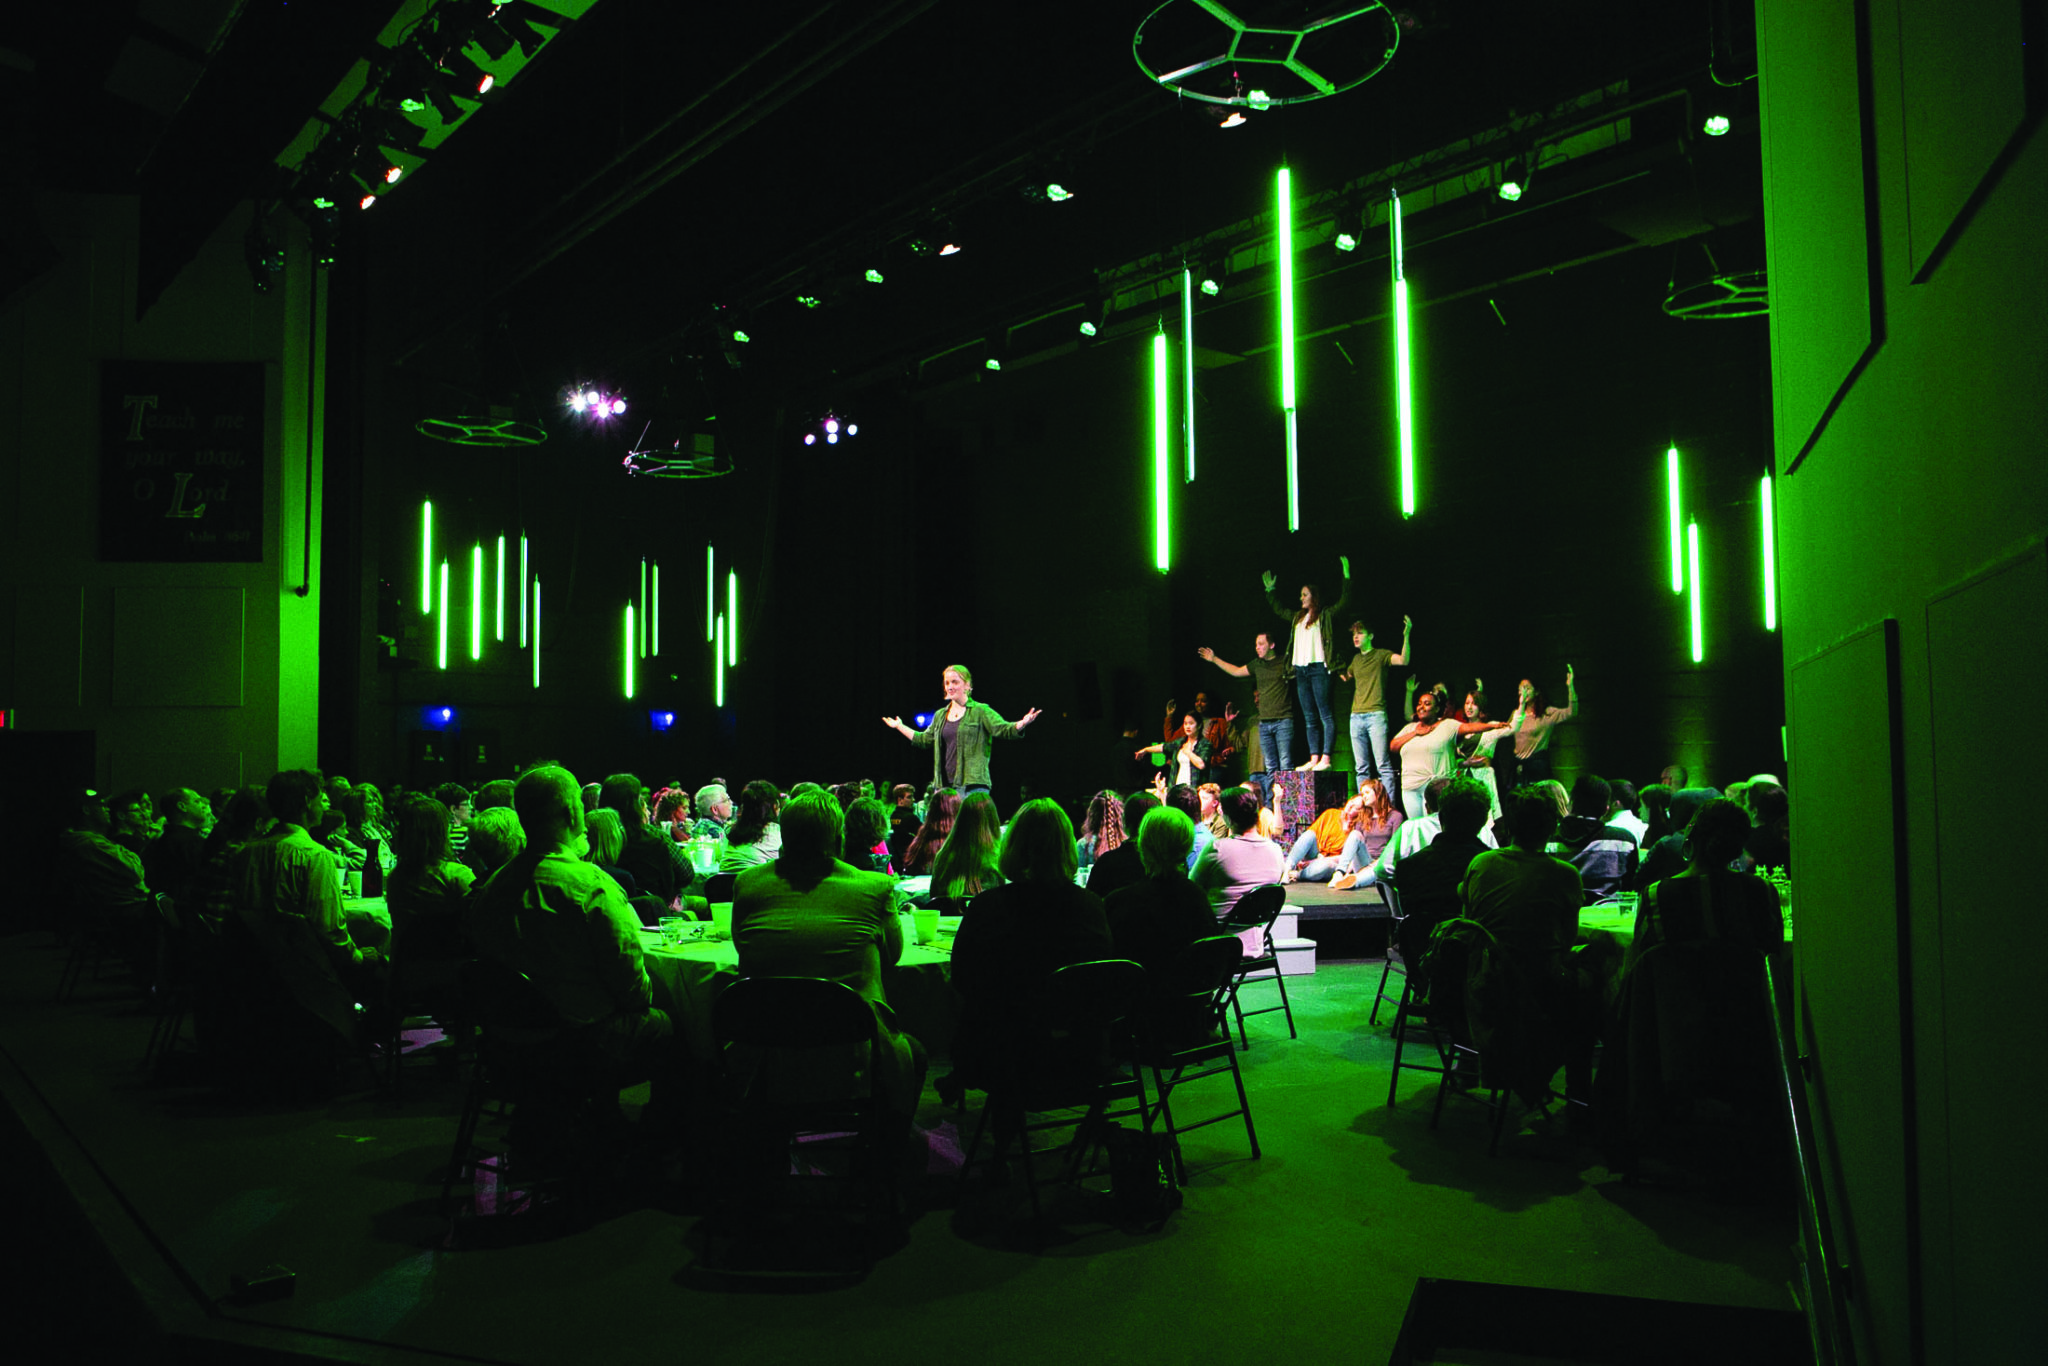 people gathered in a room for a performance